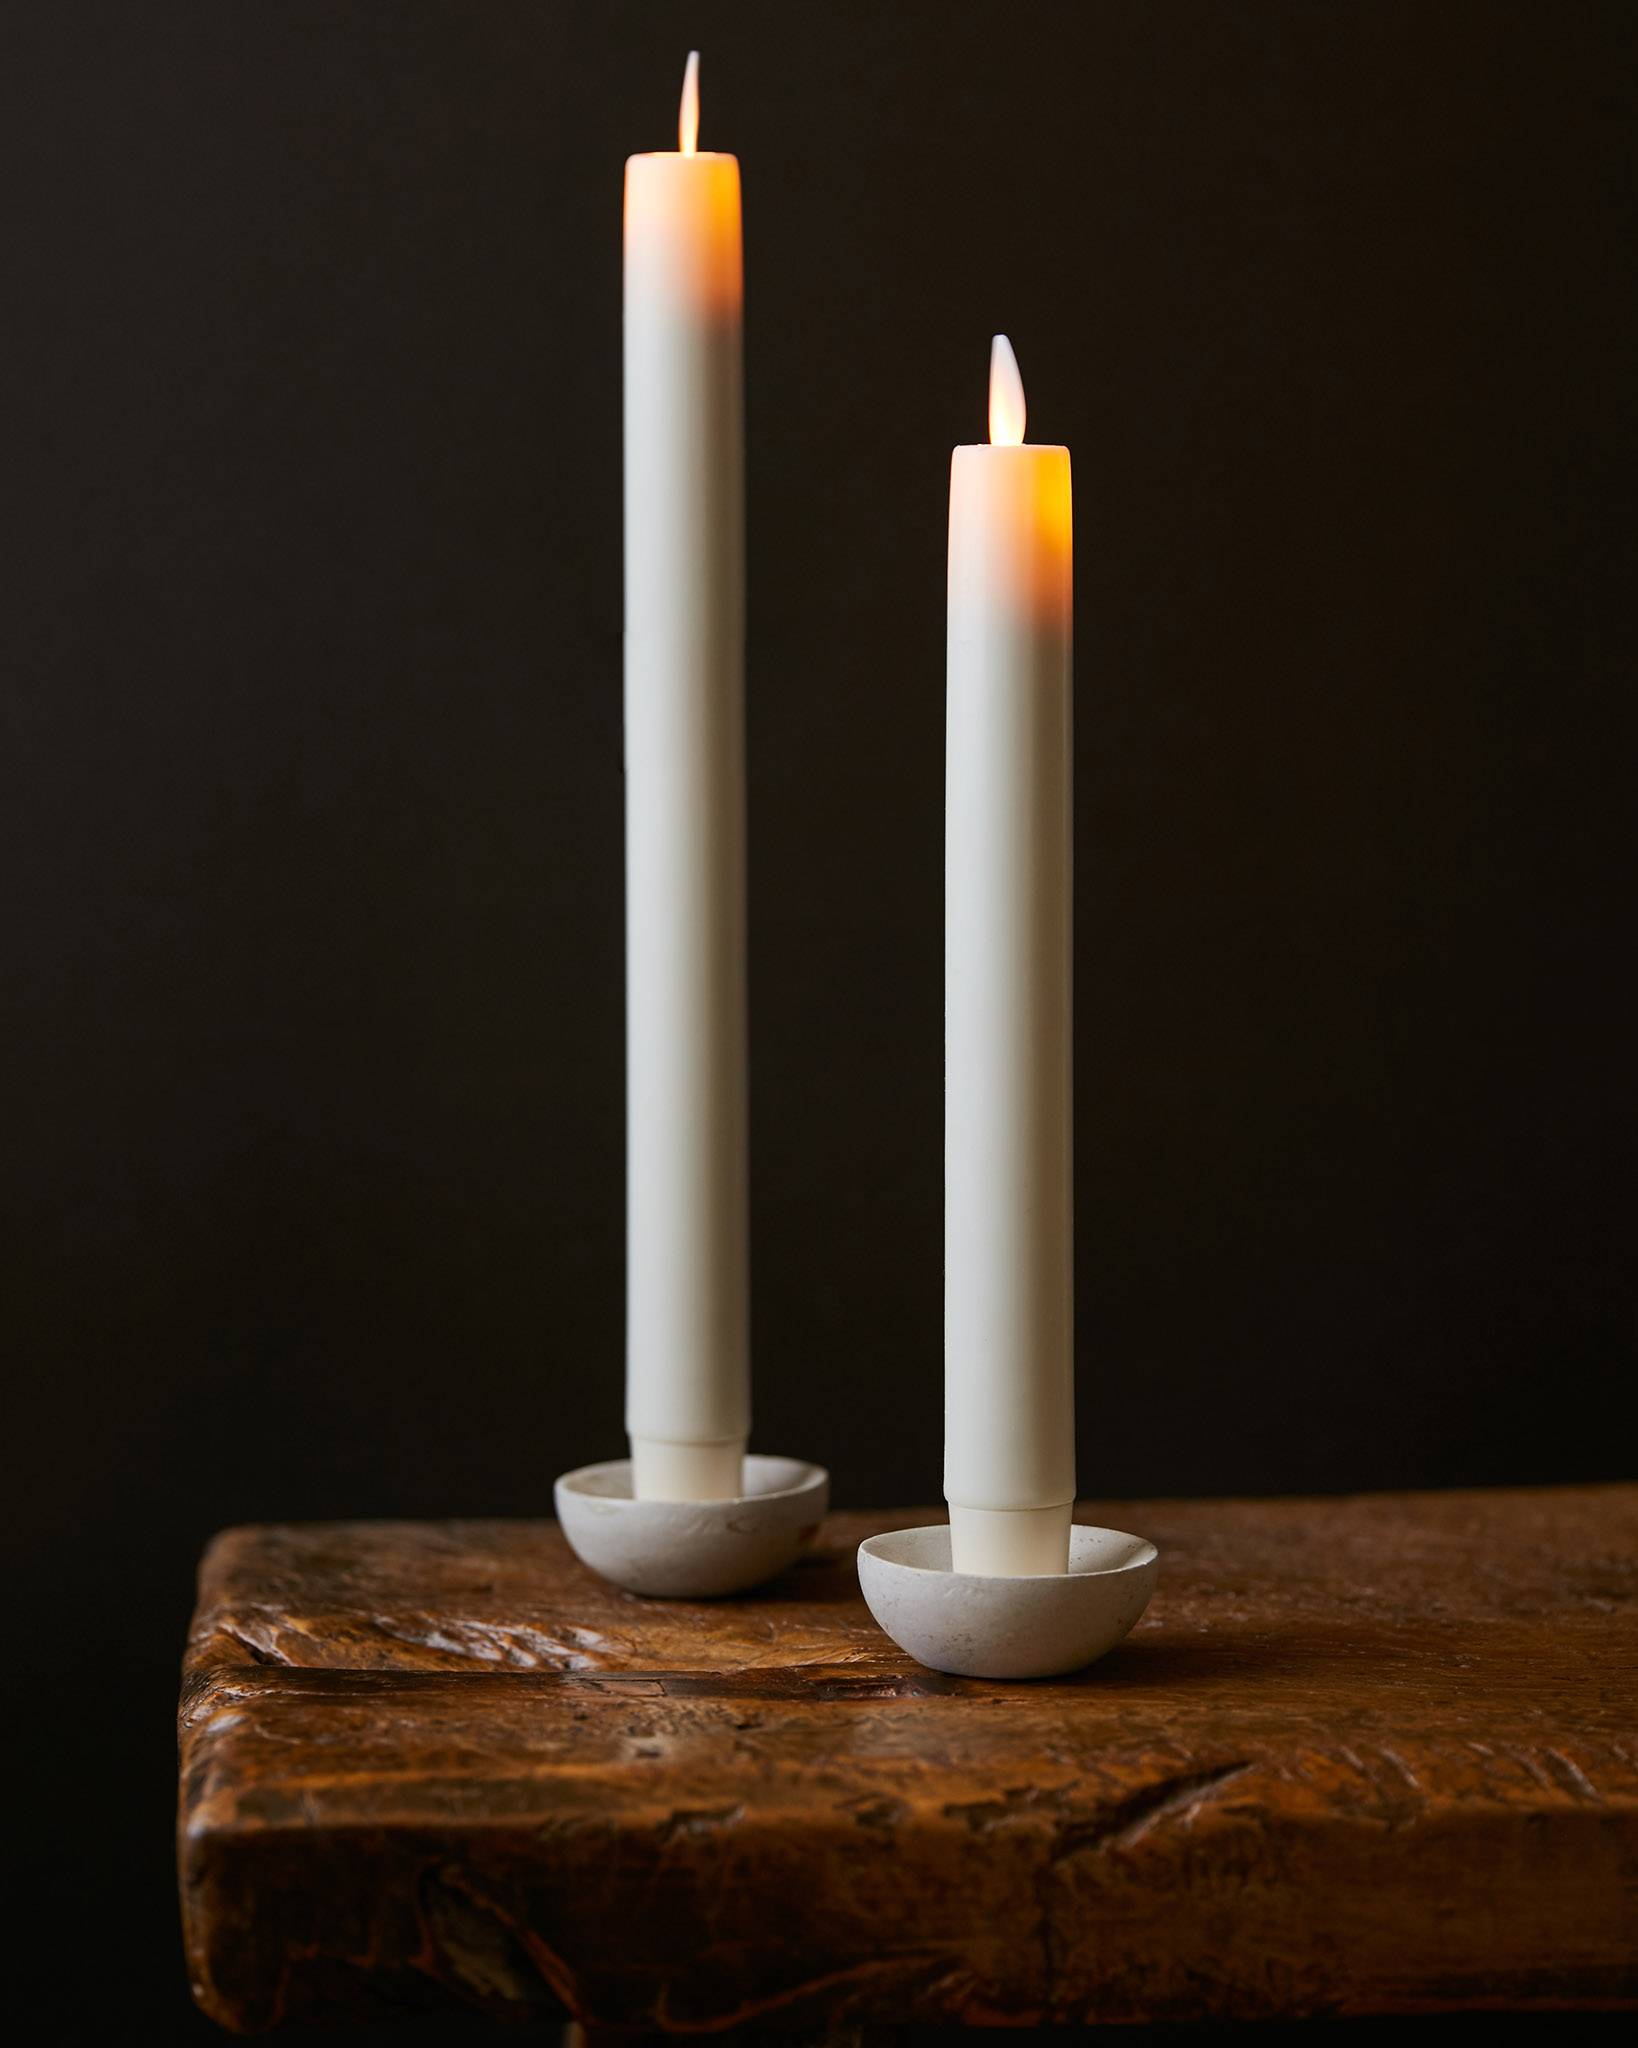 Miracle Flame LED Wax Taper Candles by Balsam Hill